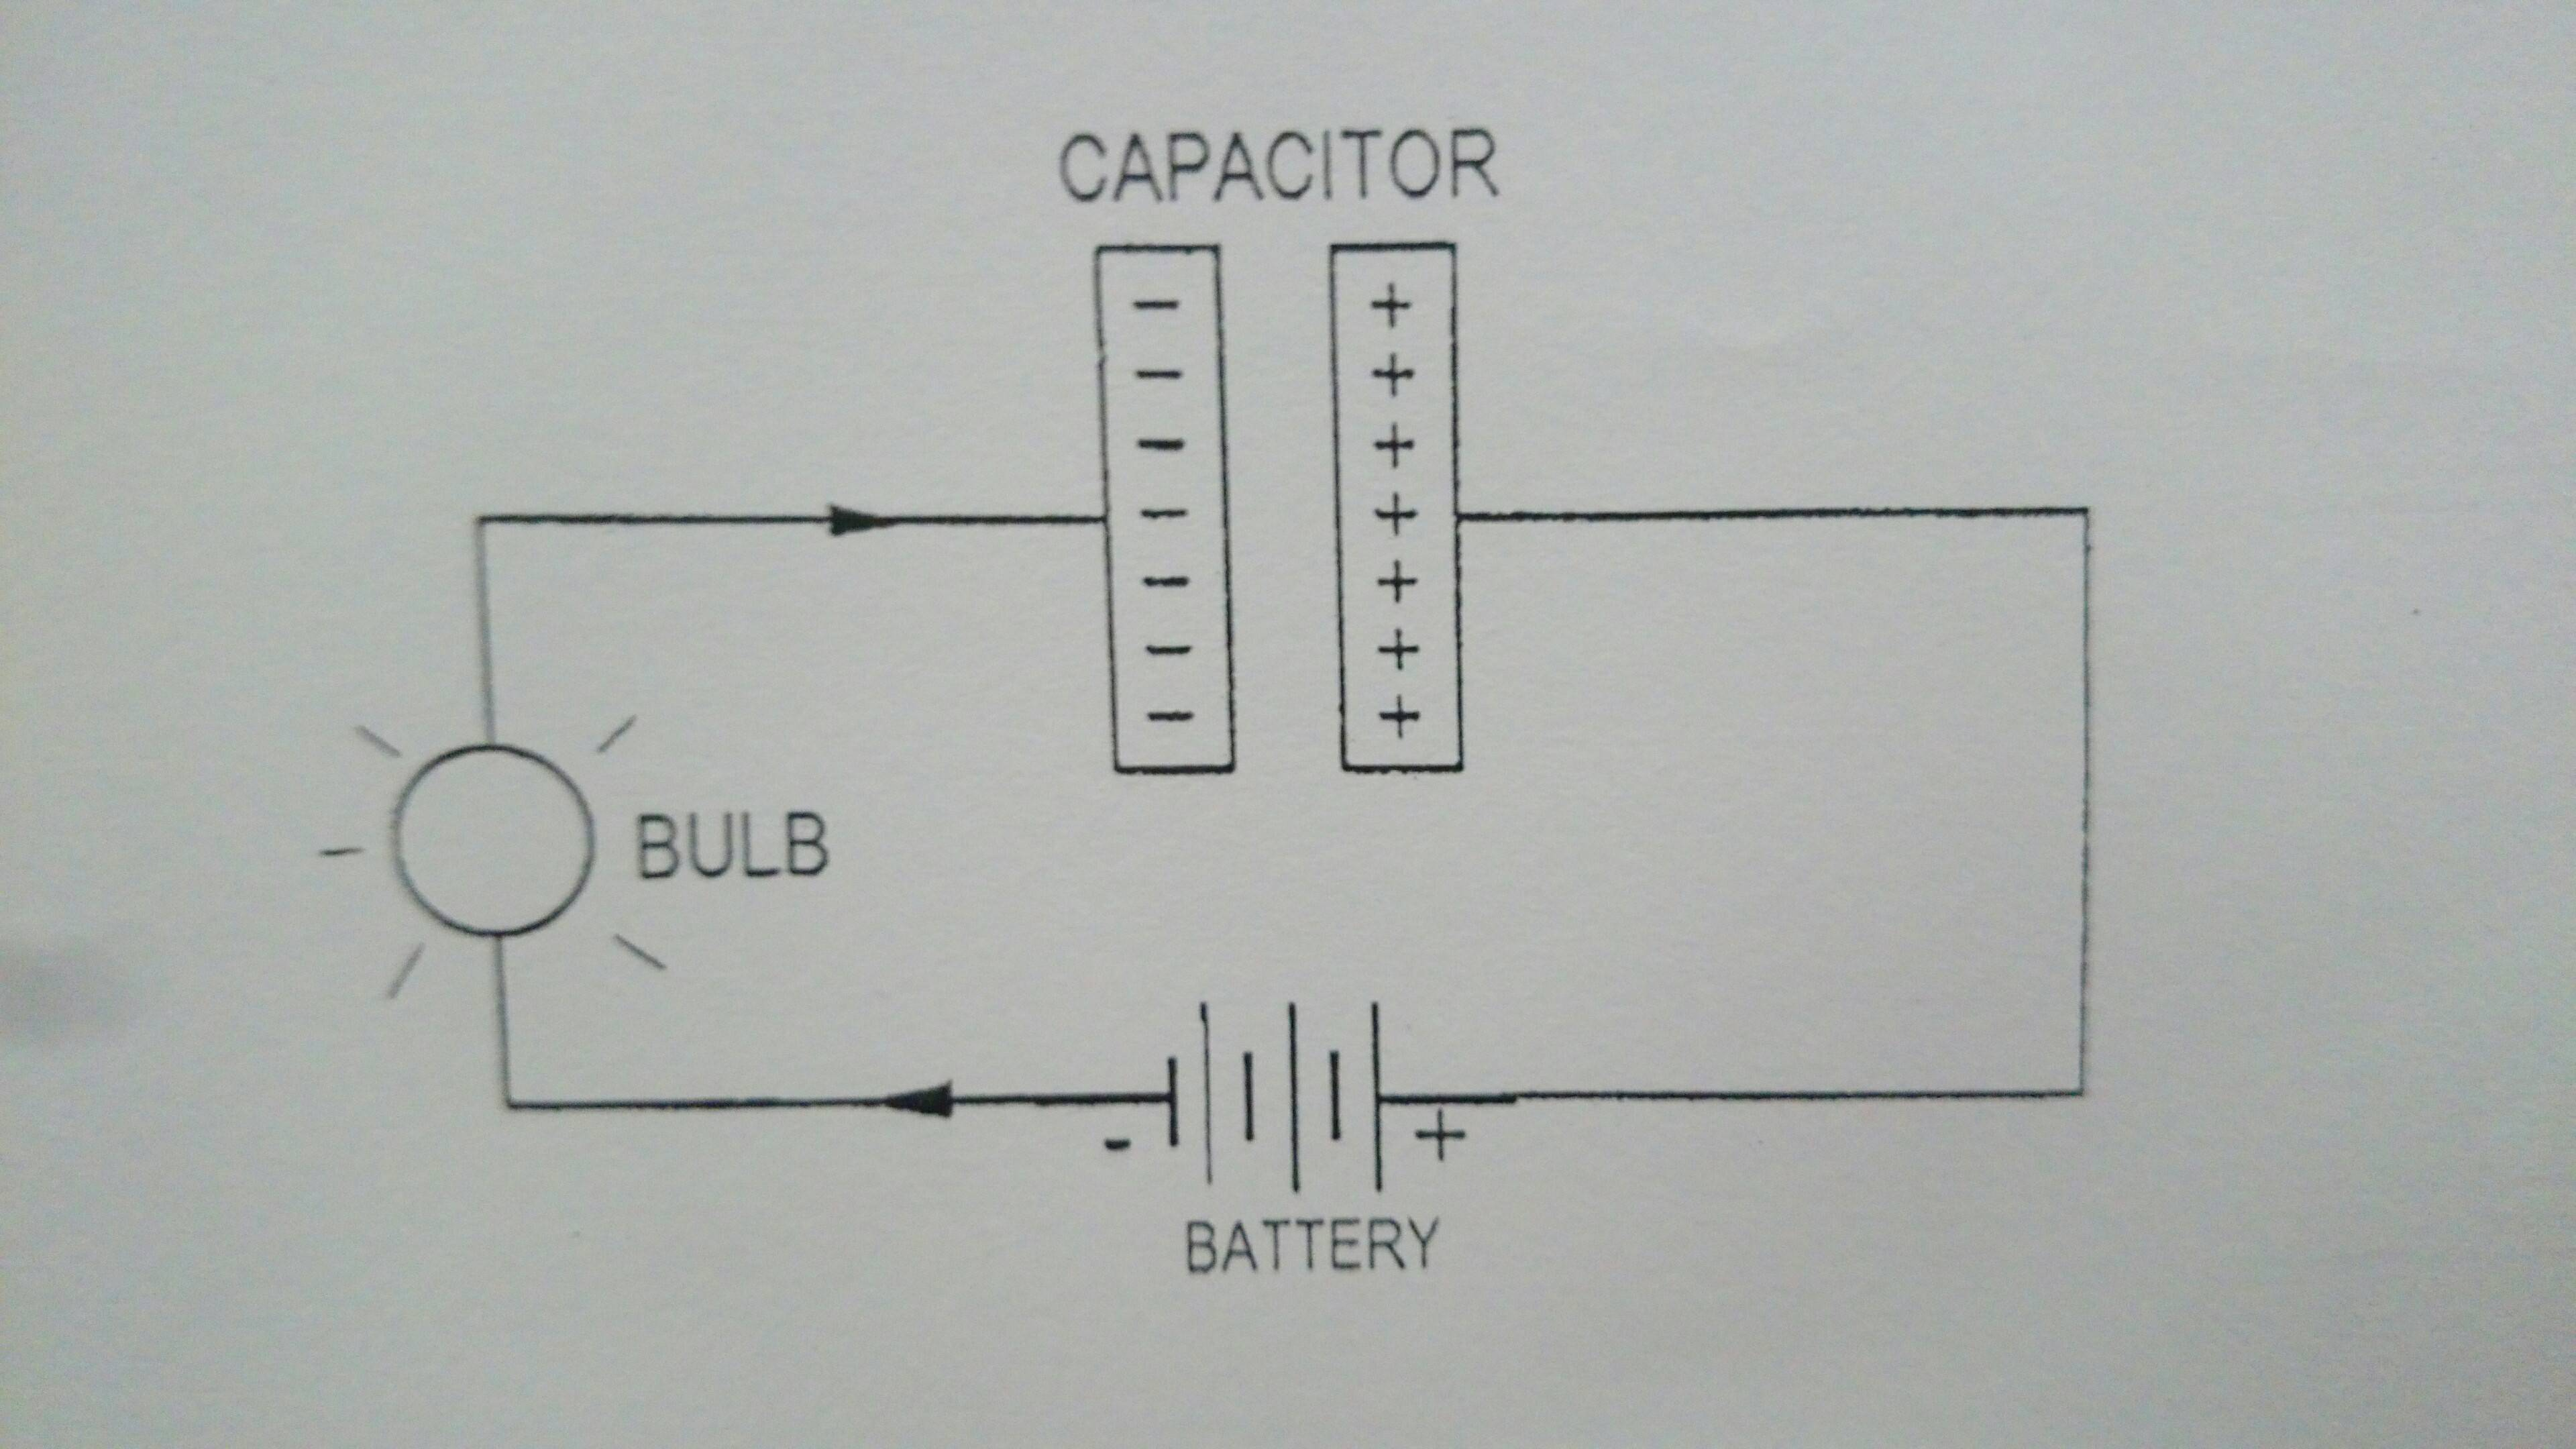 Three Light Bulbs In This Circuit Assume The Three Light Bulbs Are